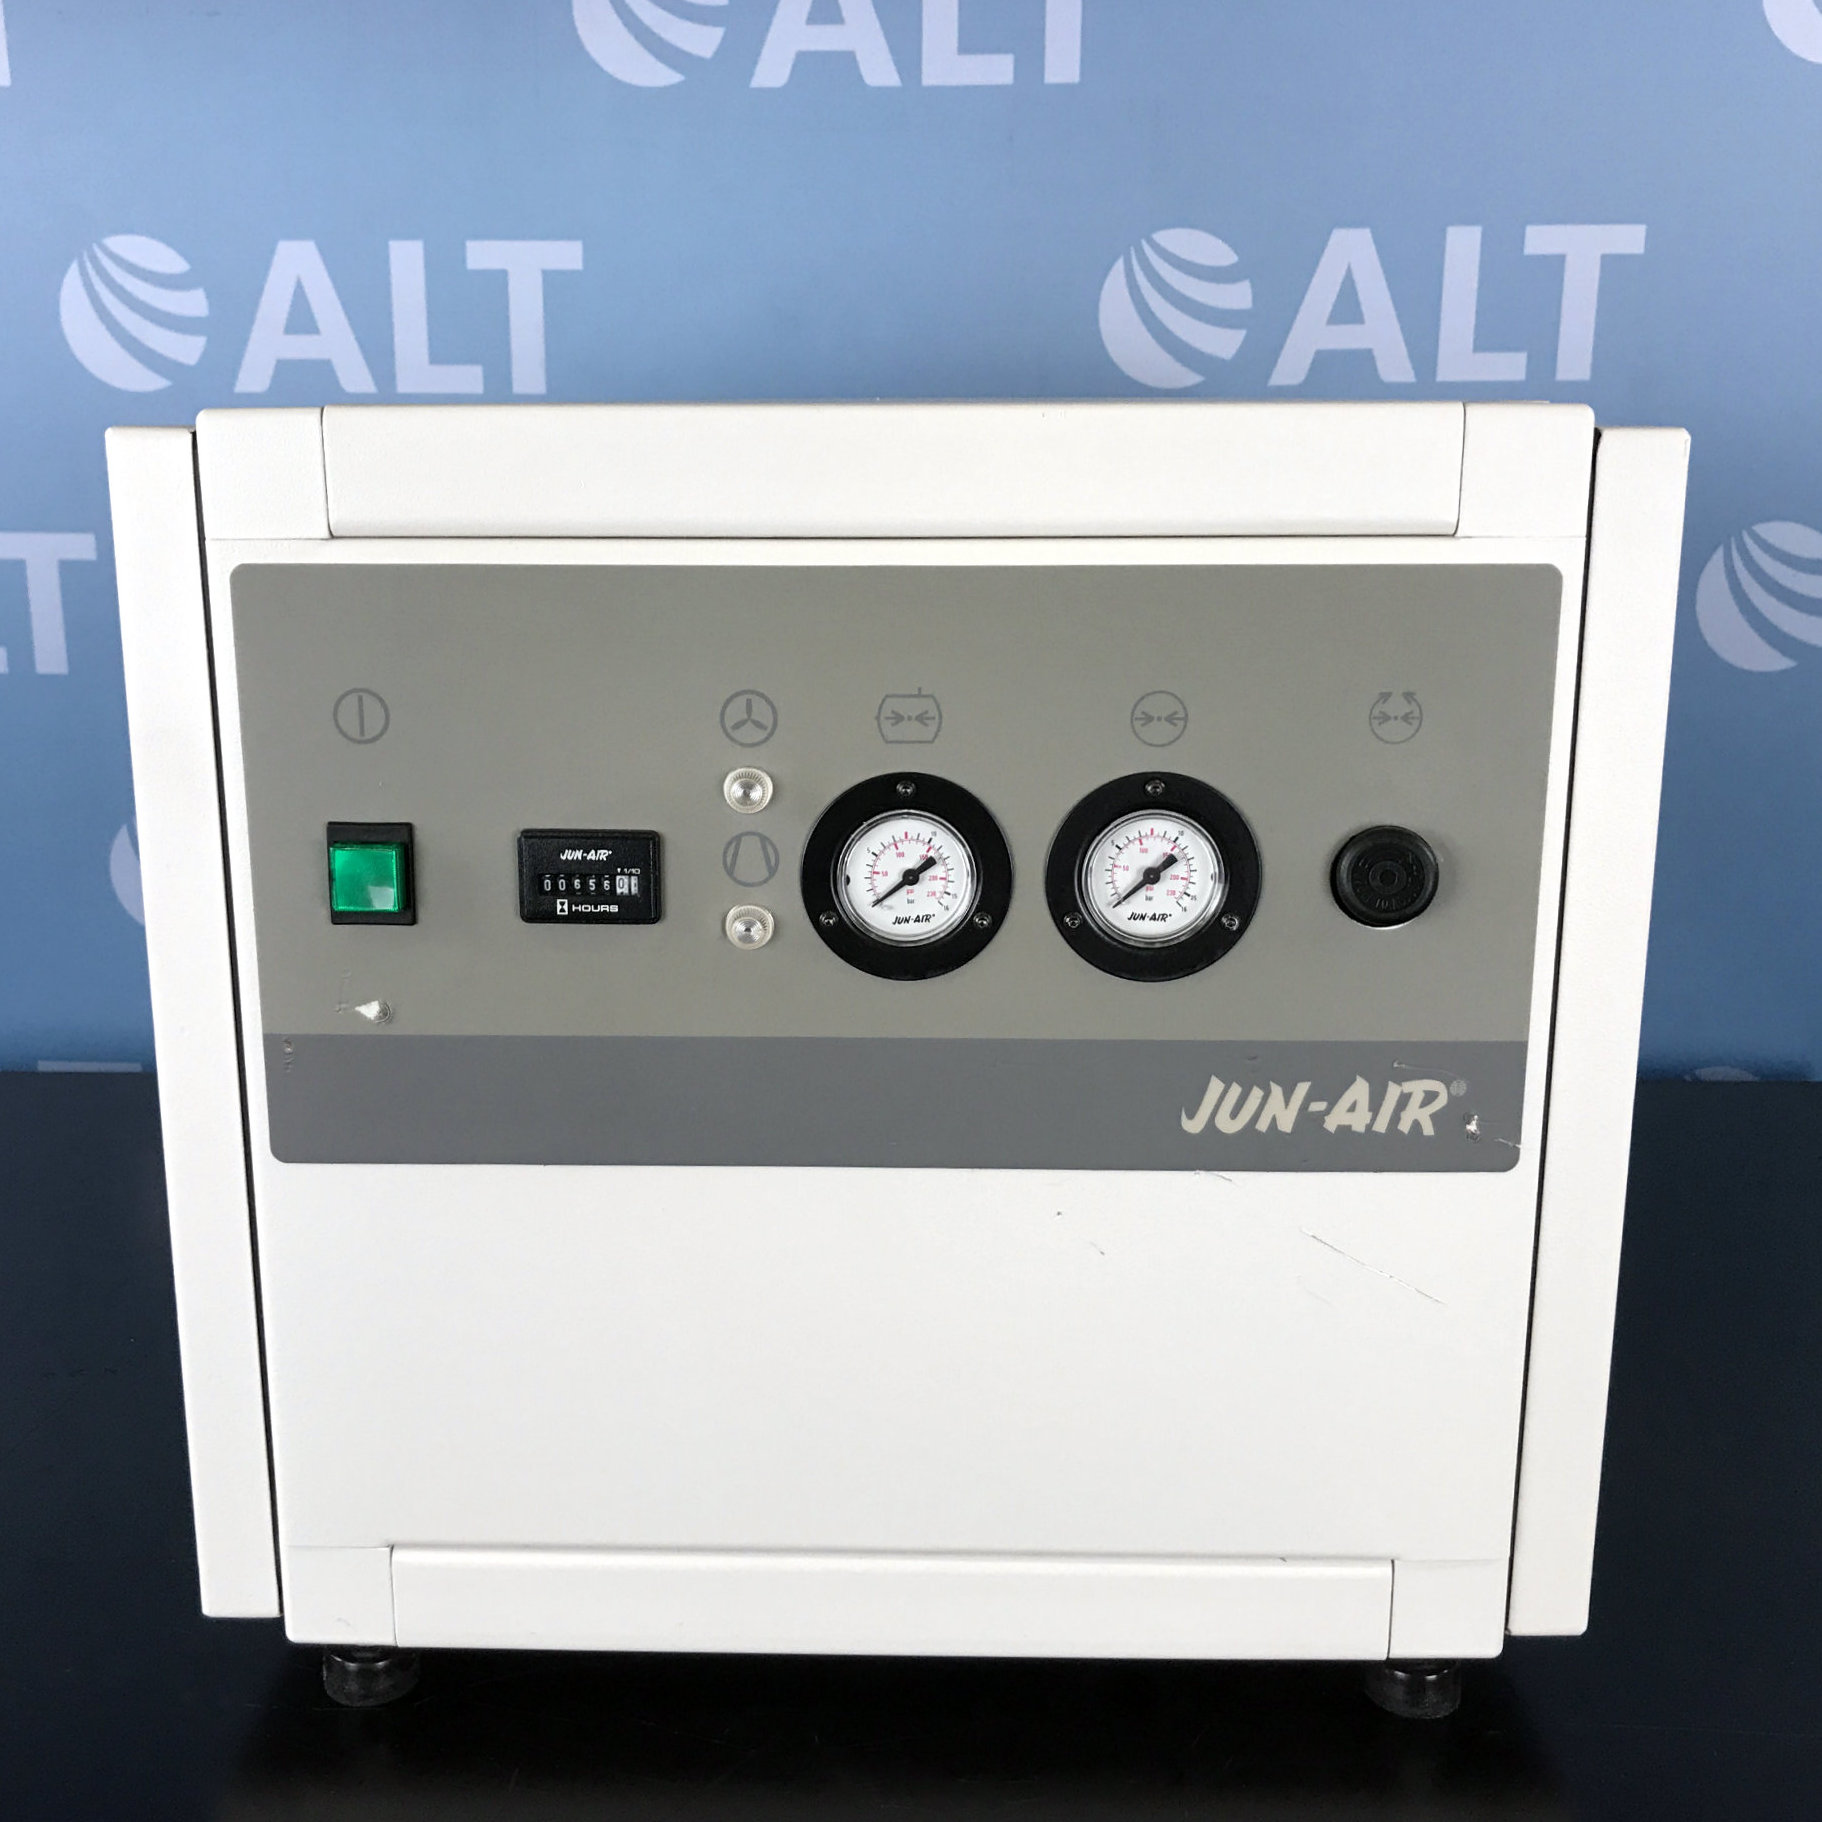 Jun-Air Compressor Model OF302-4M Image